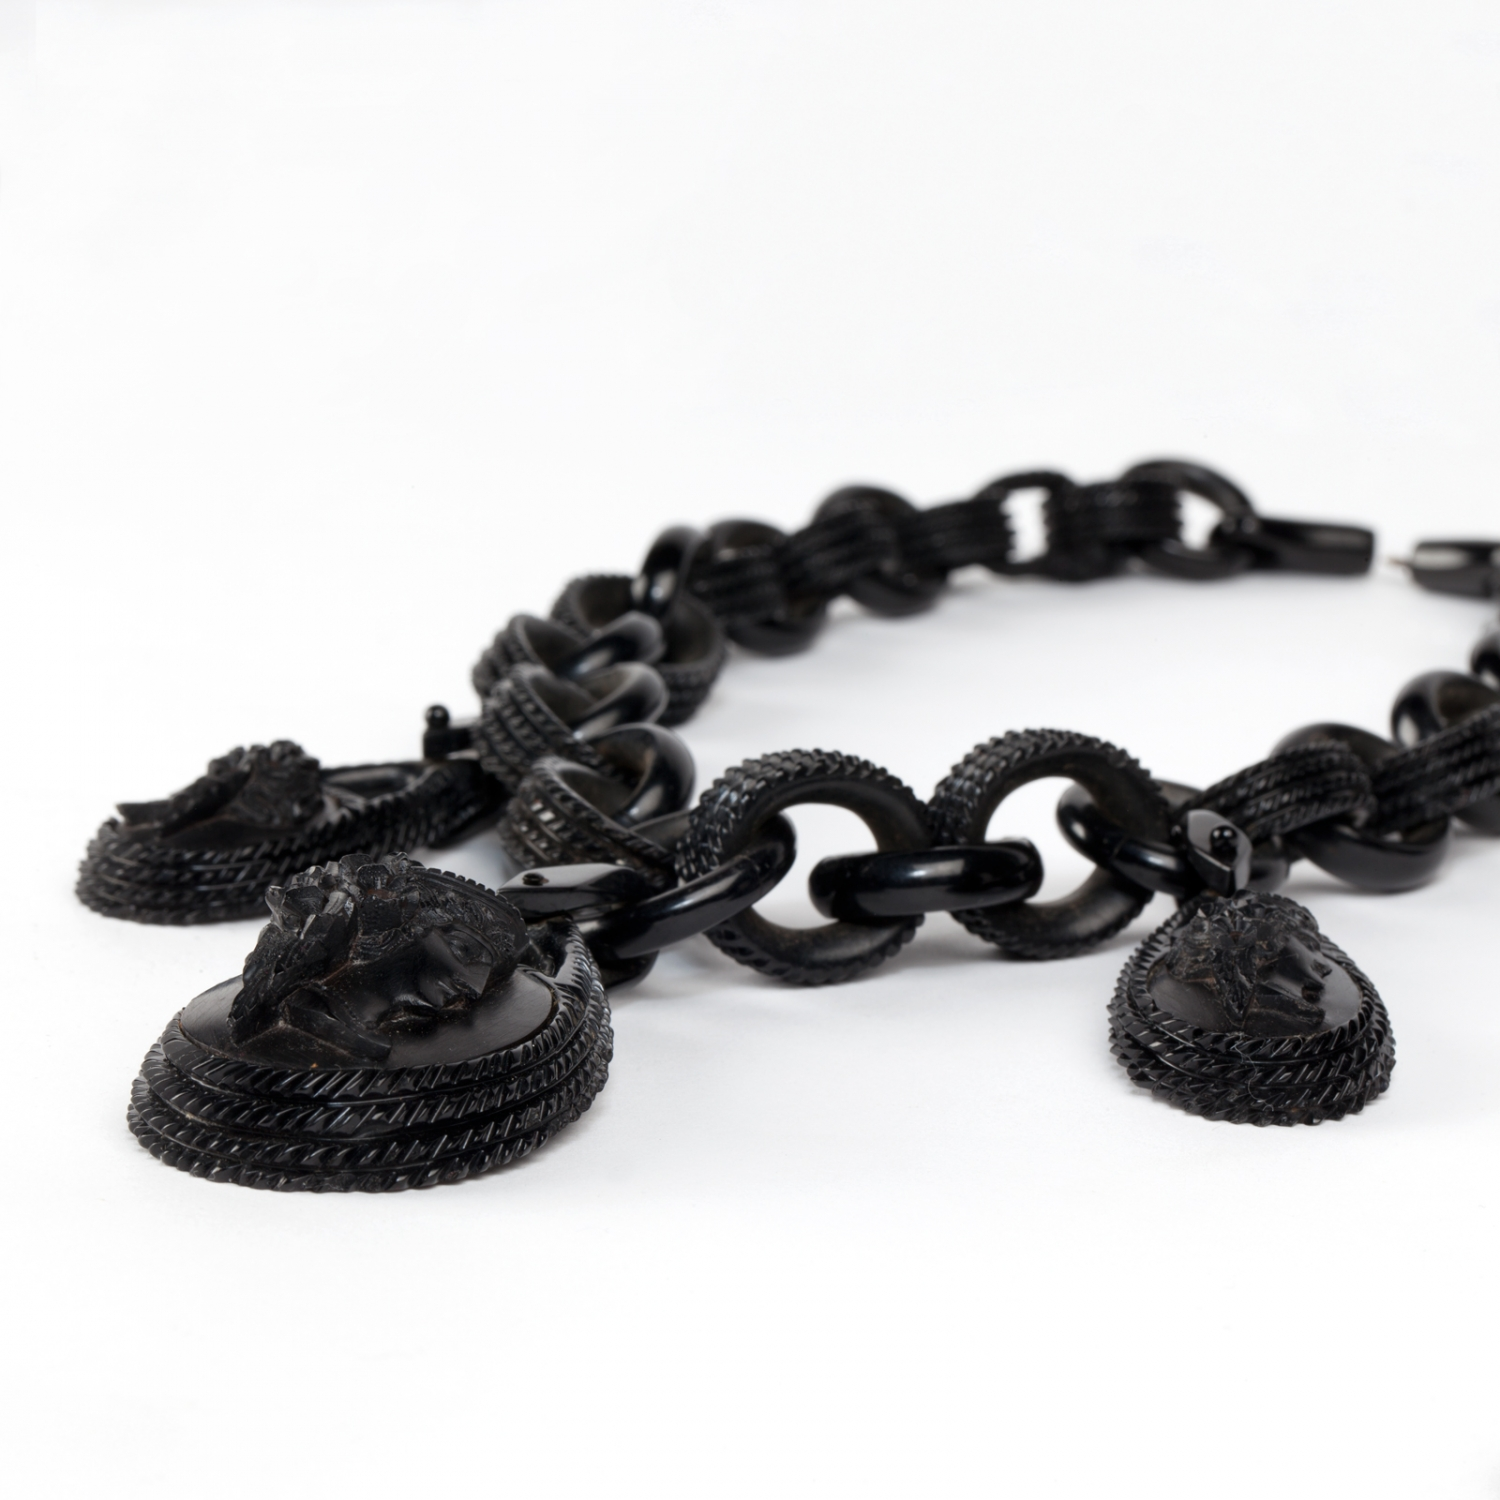 Detail view of pendants on a vulcanite necklace. The necklace is composed of 32 graduating oval links and three oval pendants.